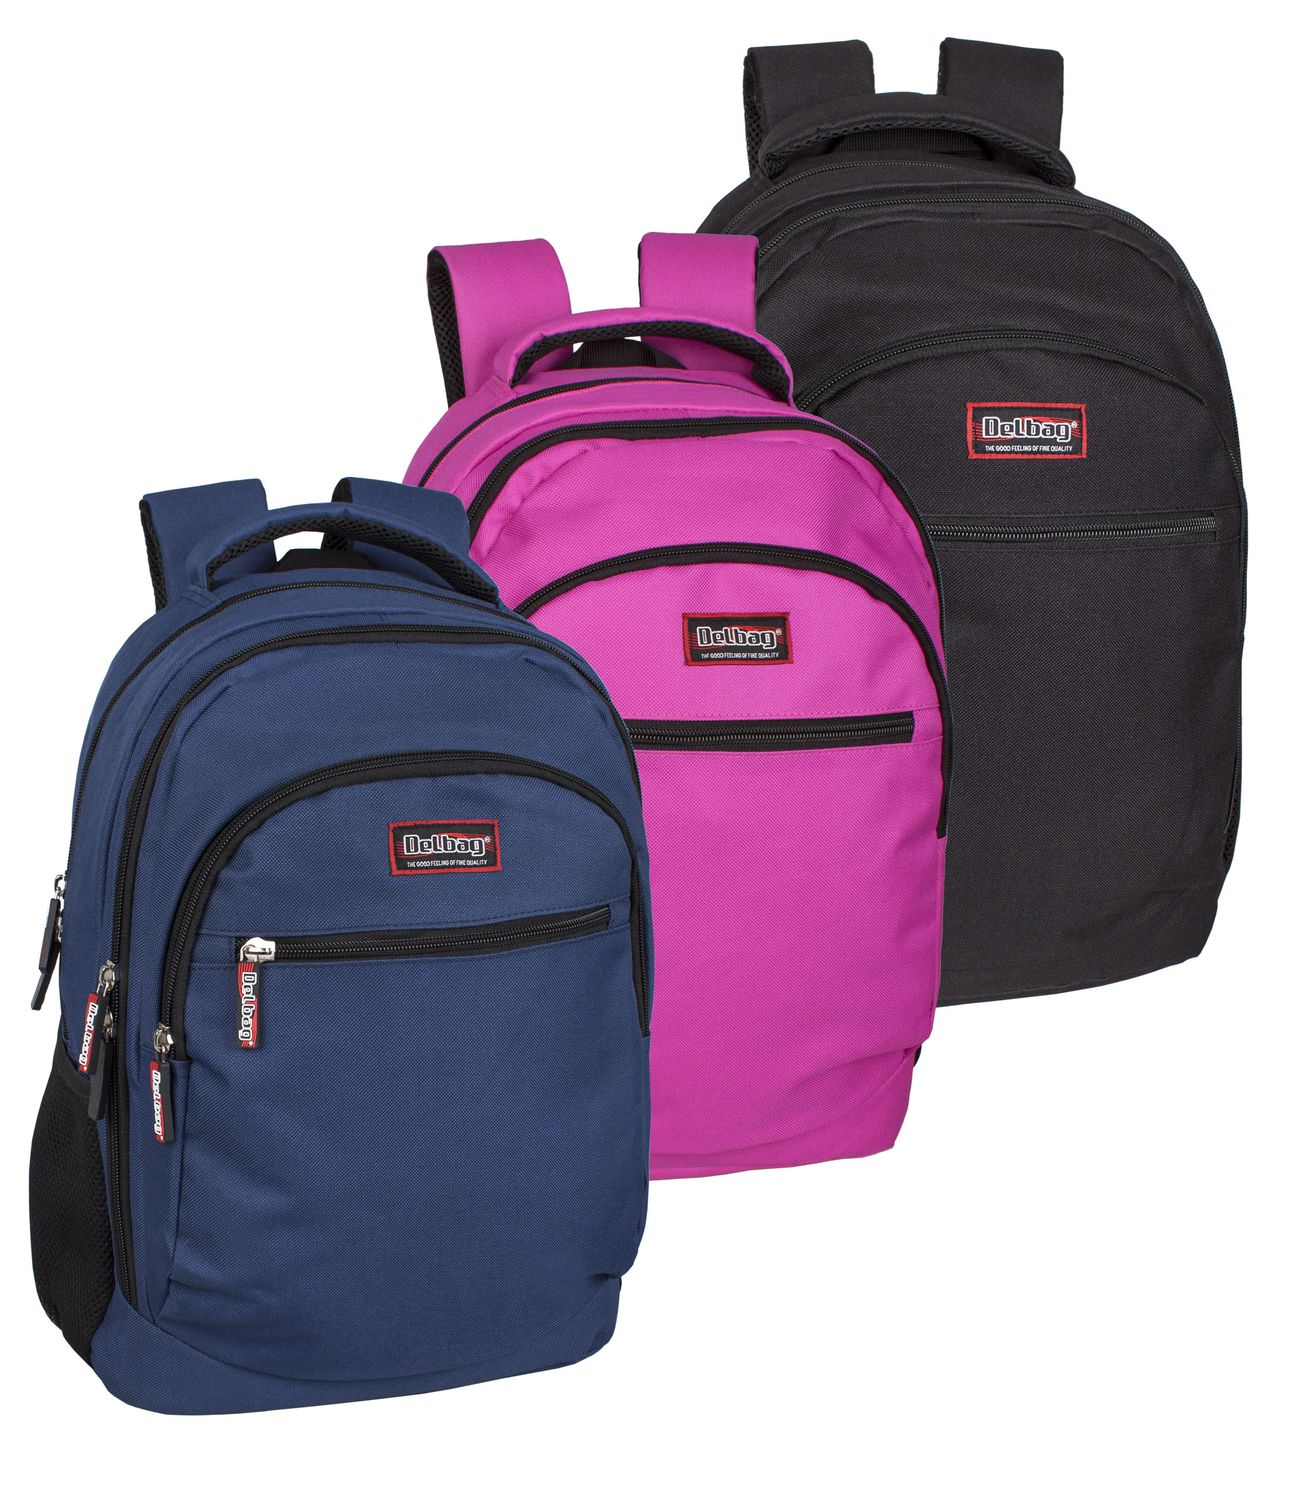 Delbag Triple Compartment Laptop Backpack Multicolour – image 1